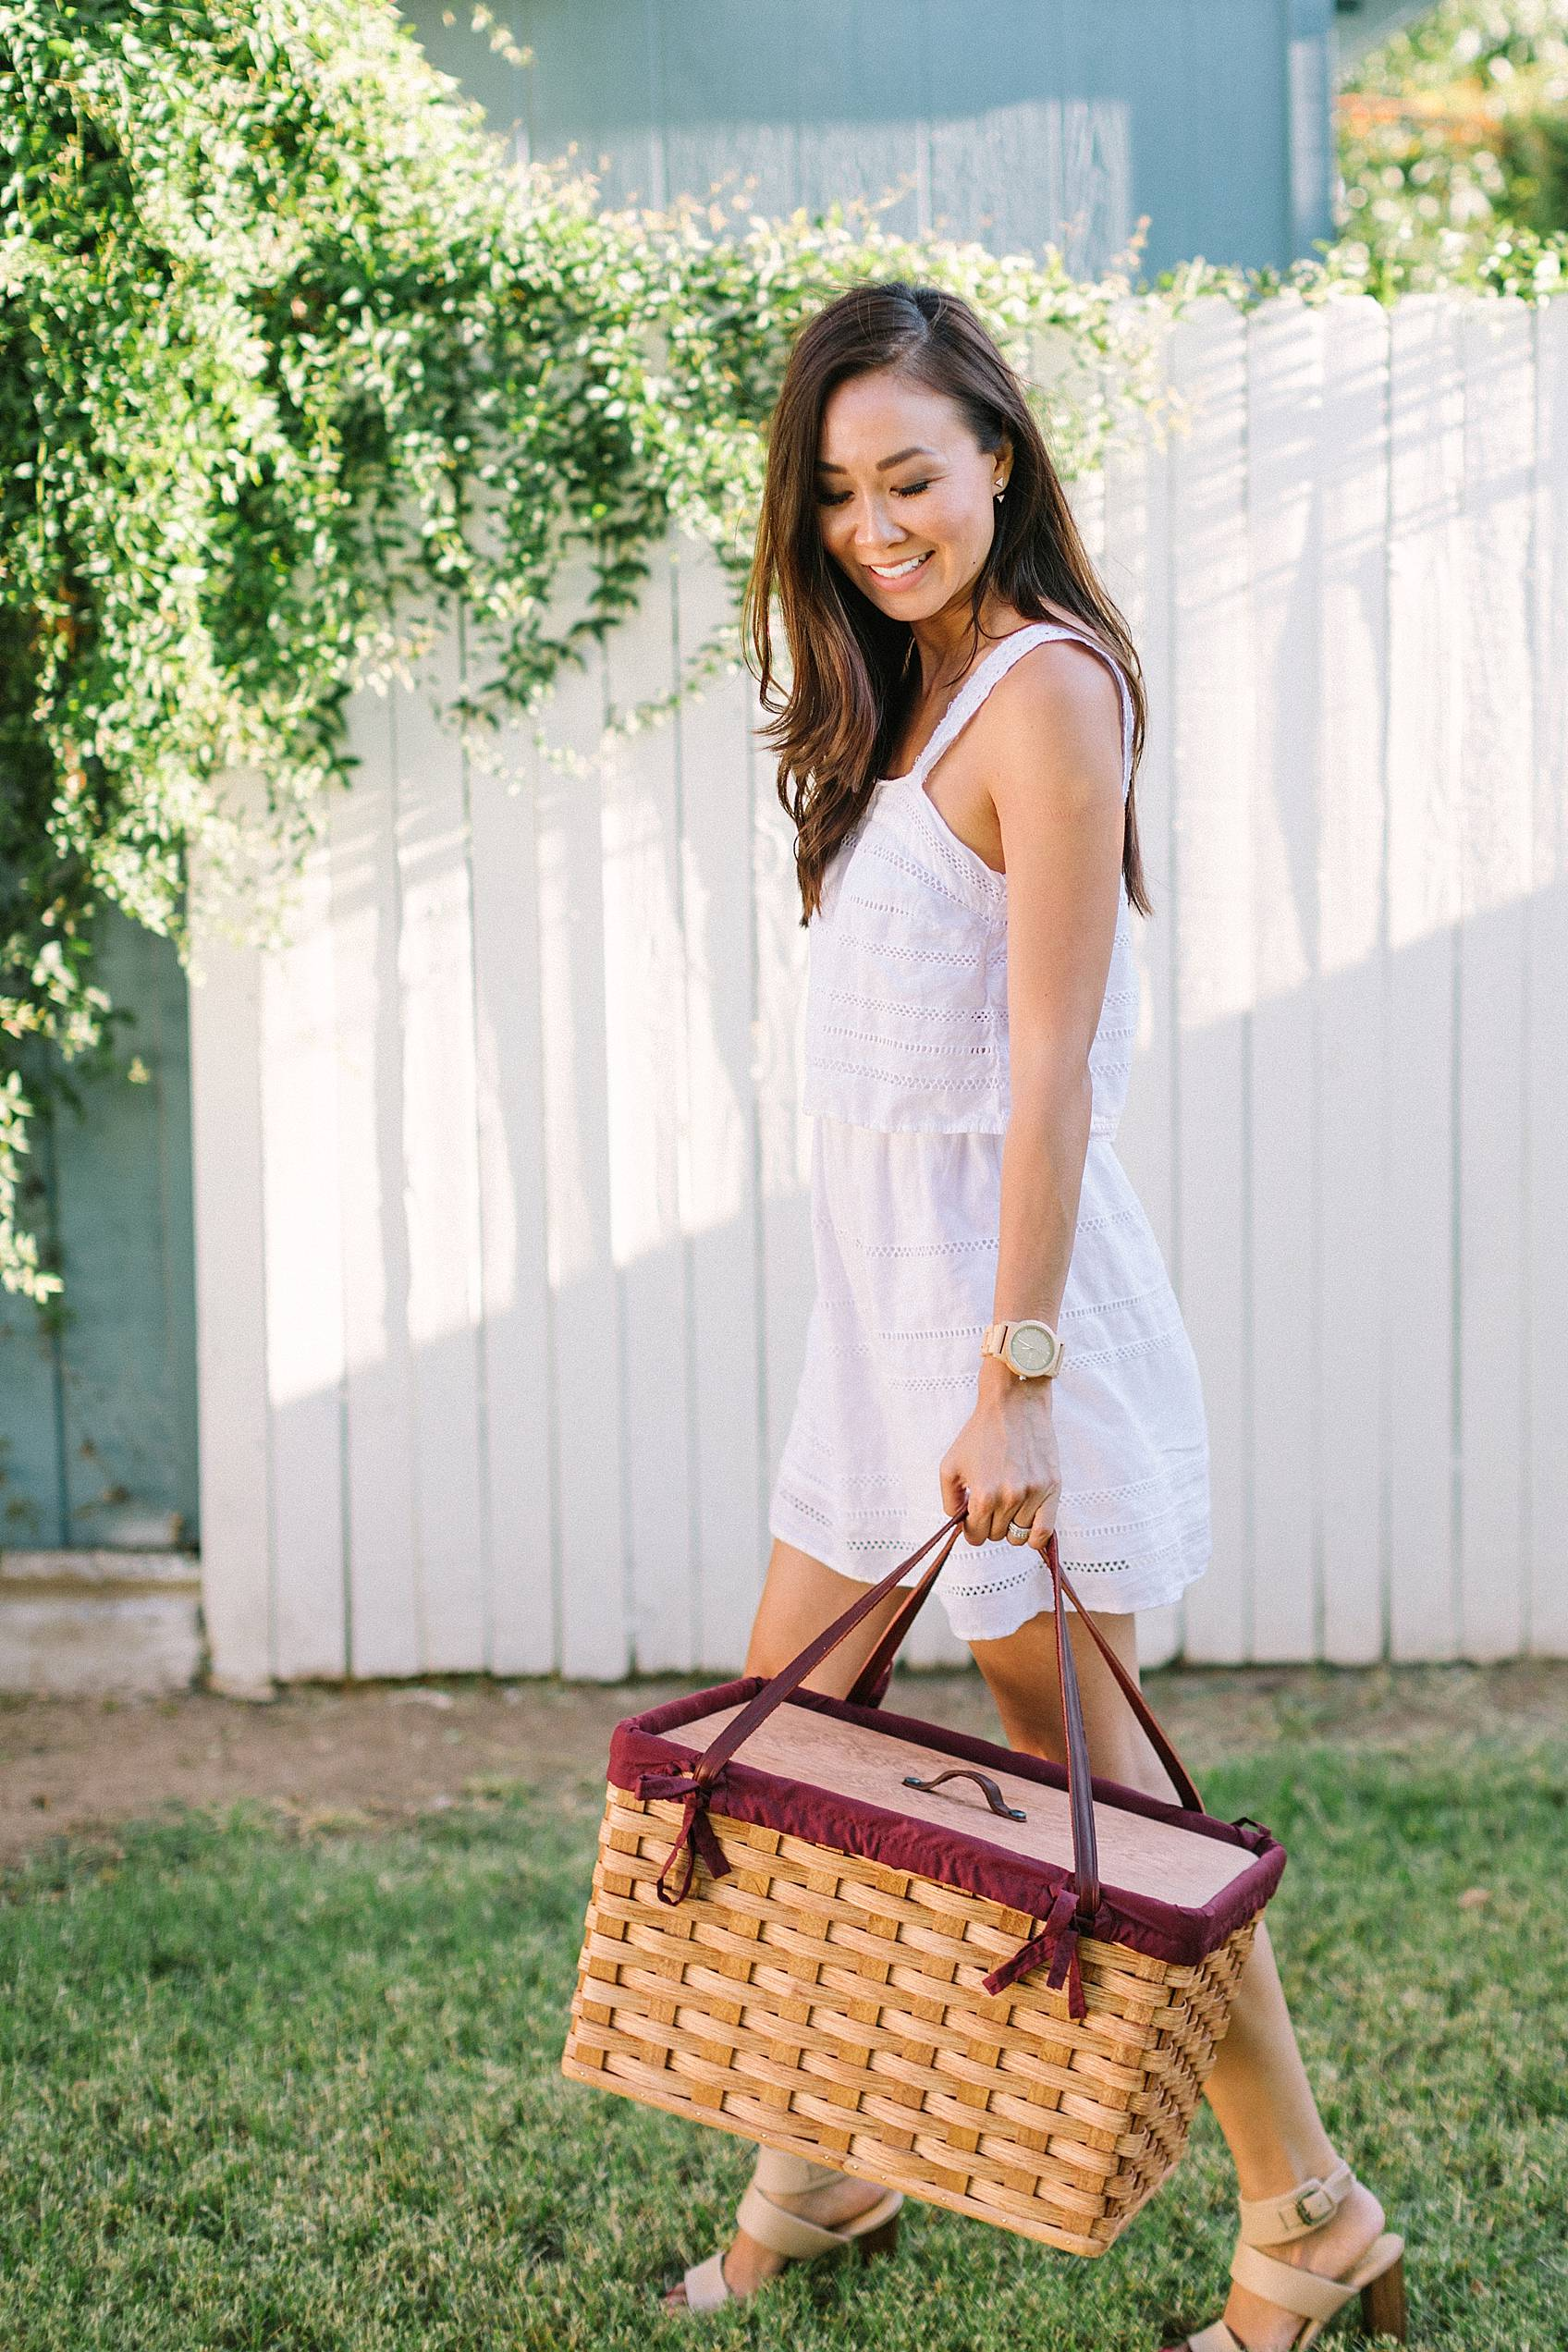 lifestyle blogger diana Elizabeth holding an amish made picnic basket in white dress infront of white fence standing on grass